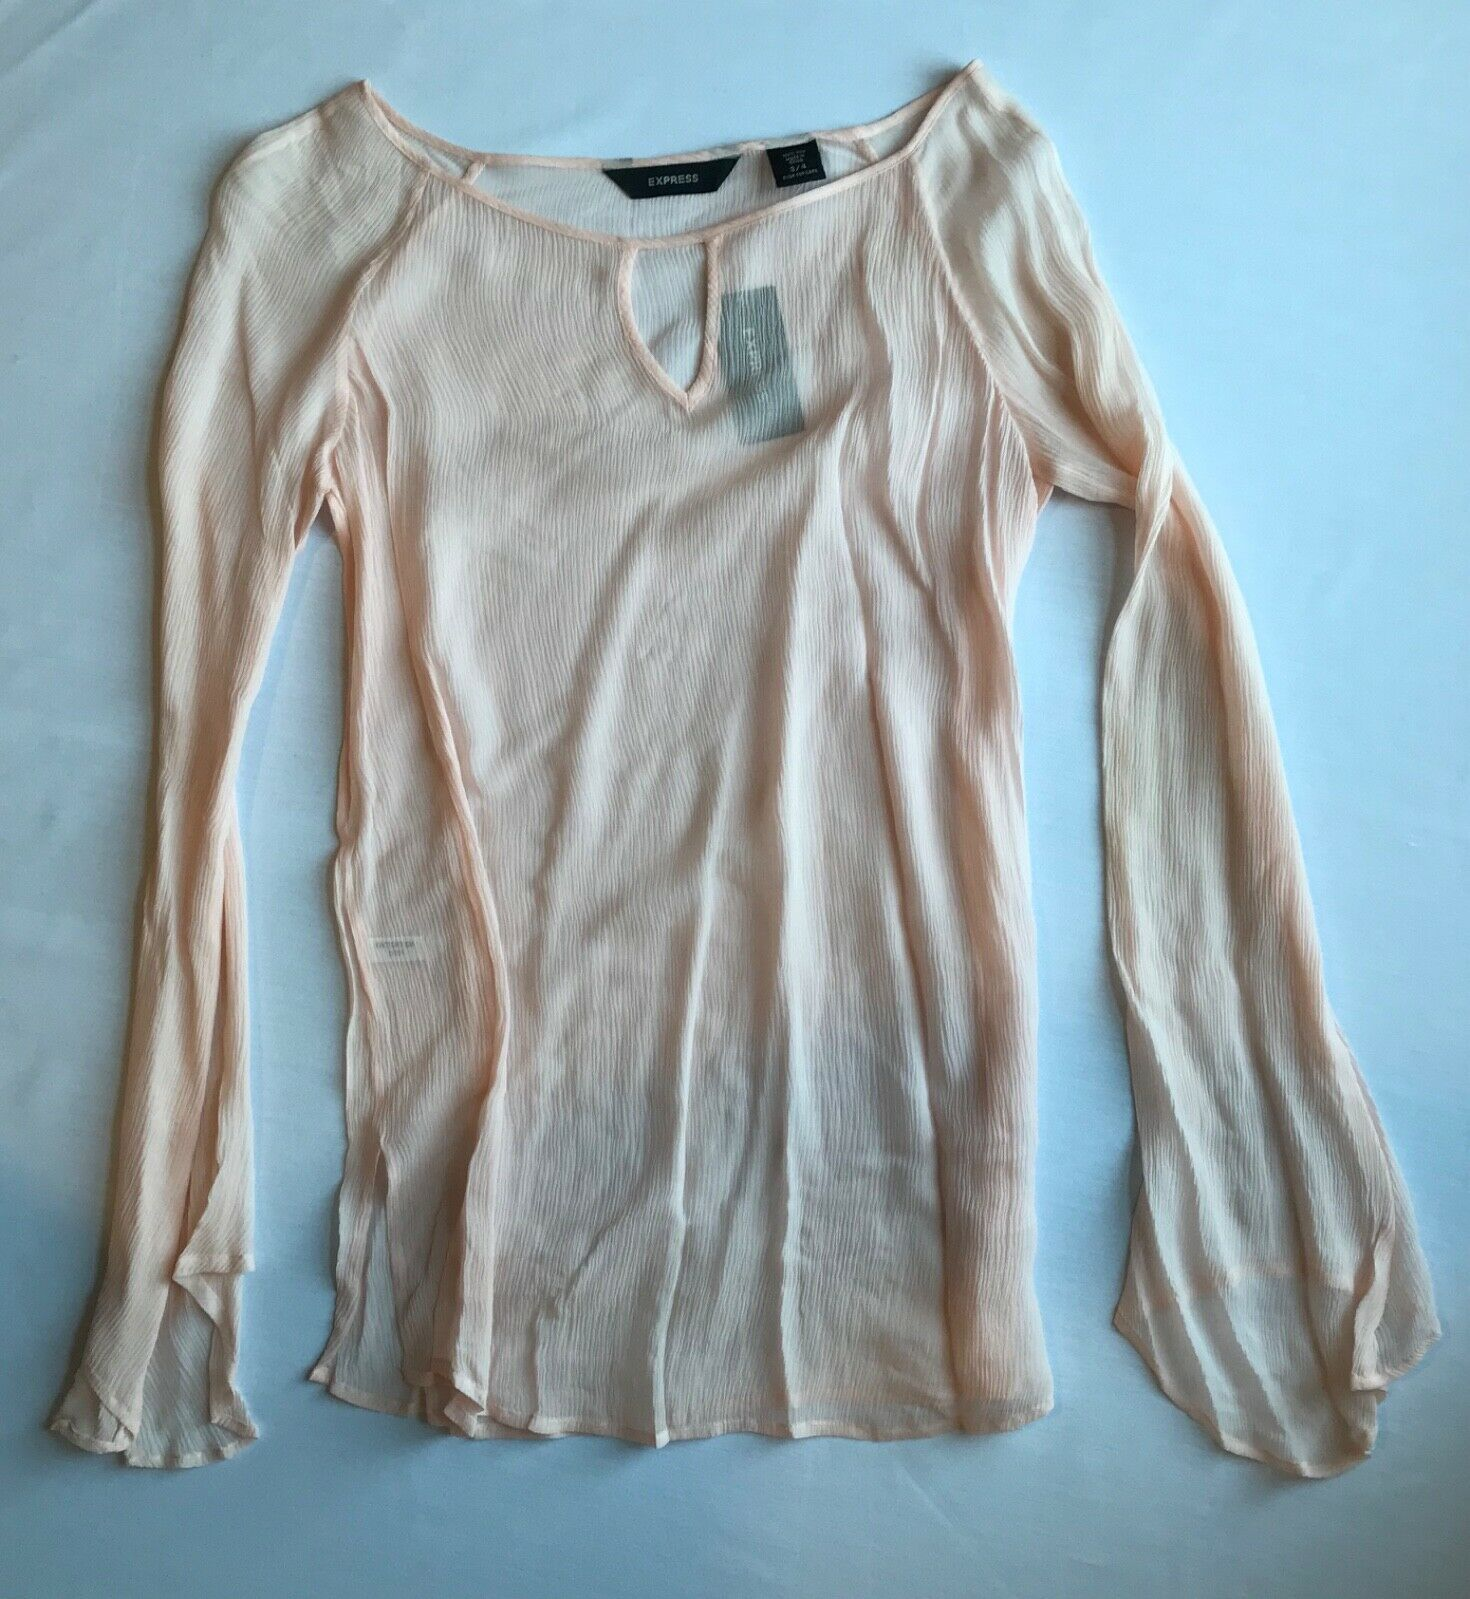 Primary image for Express Silk Boat Neck Top in Light Pink w/ Bell Sleeves